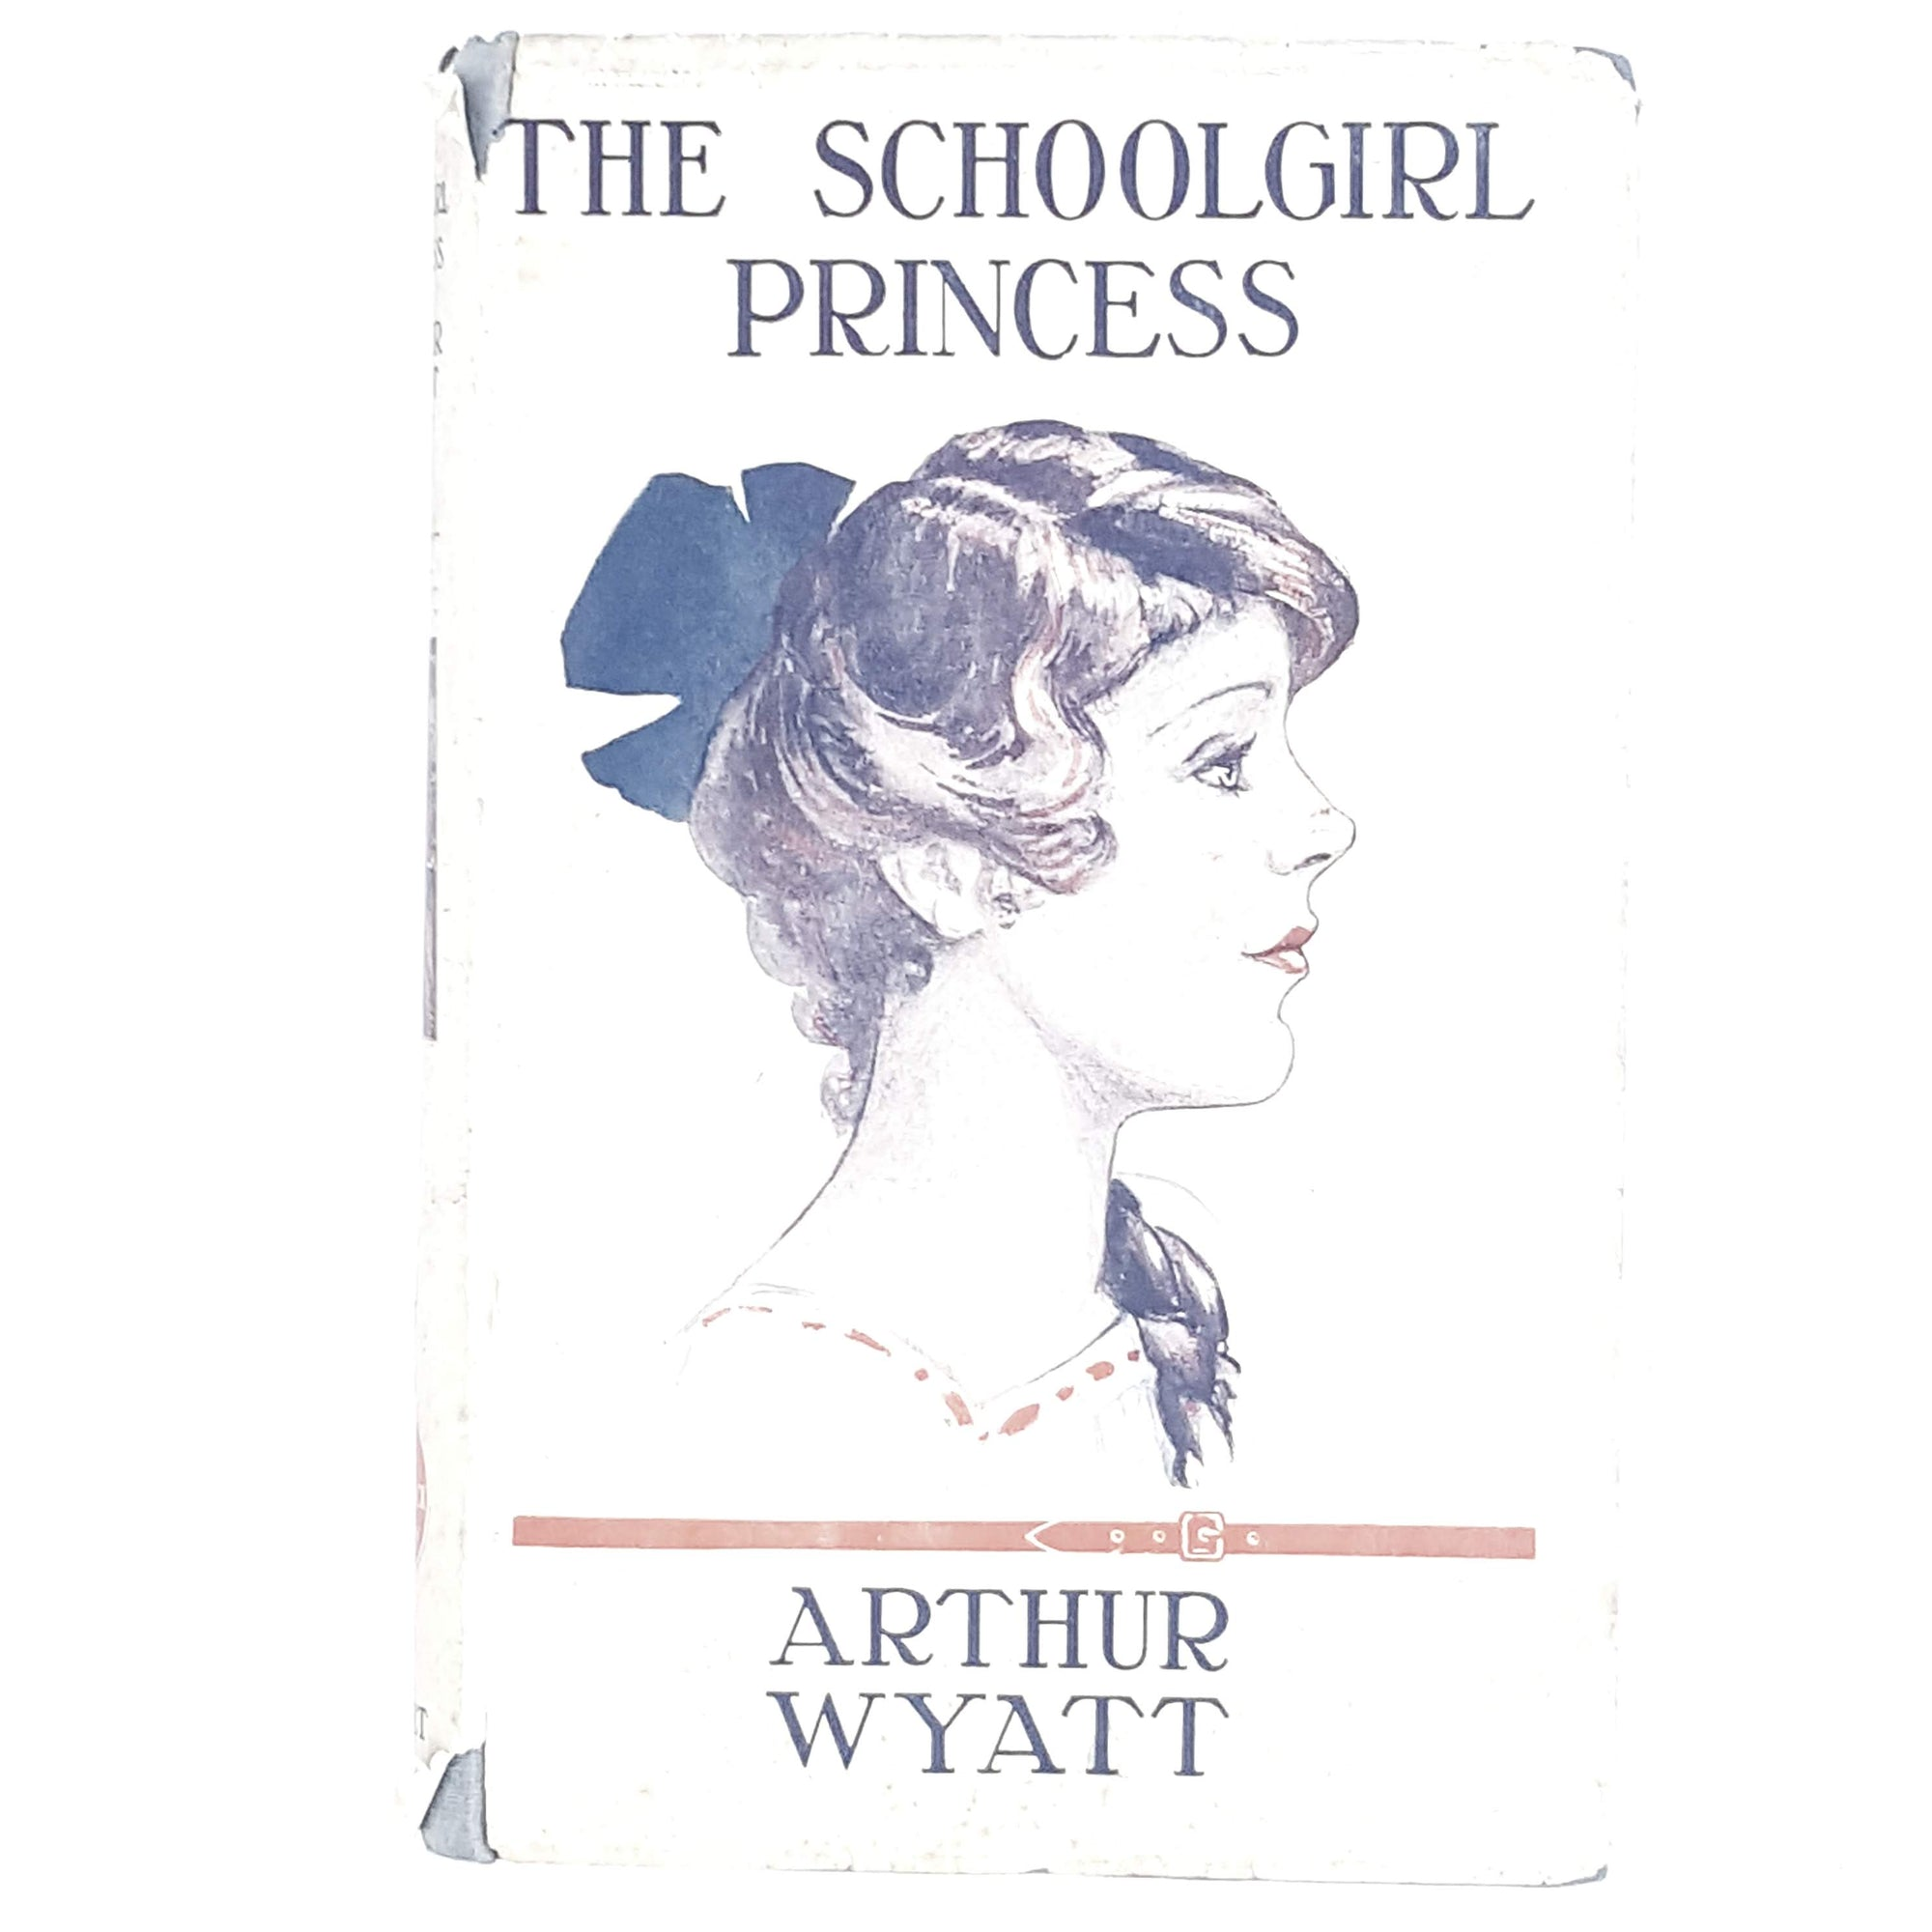 vintage-cover-he-schoolgirl-princess-by-arthur-wyatt-country-house-library